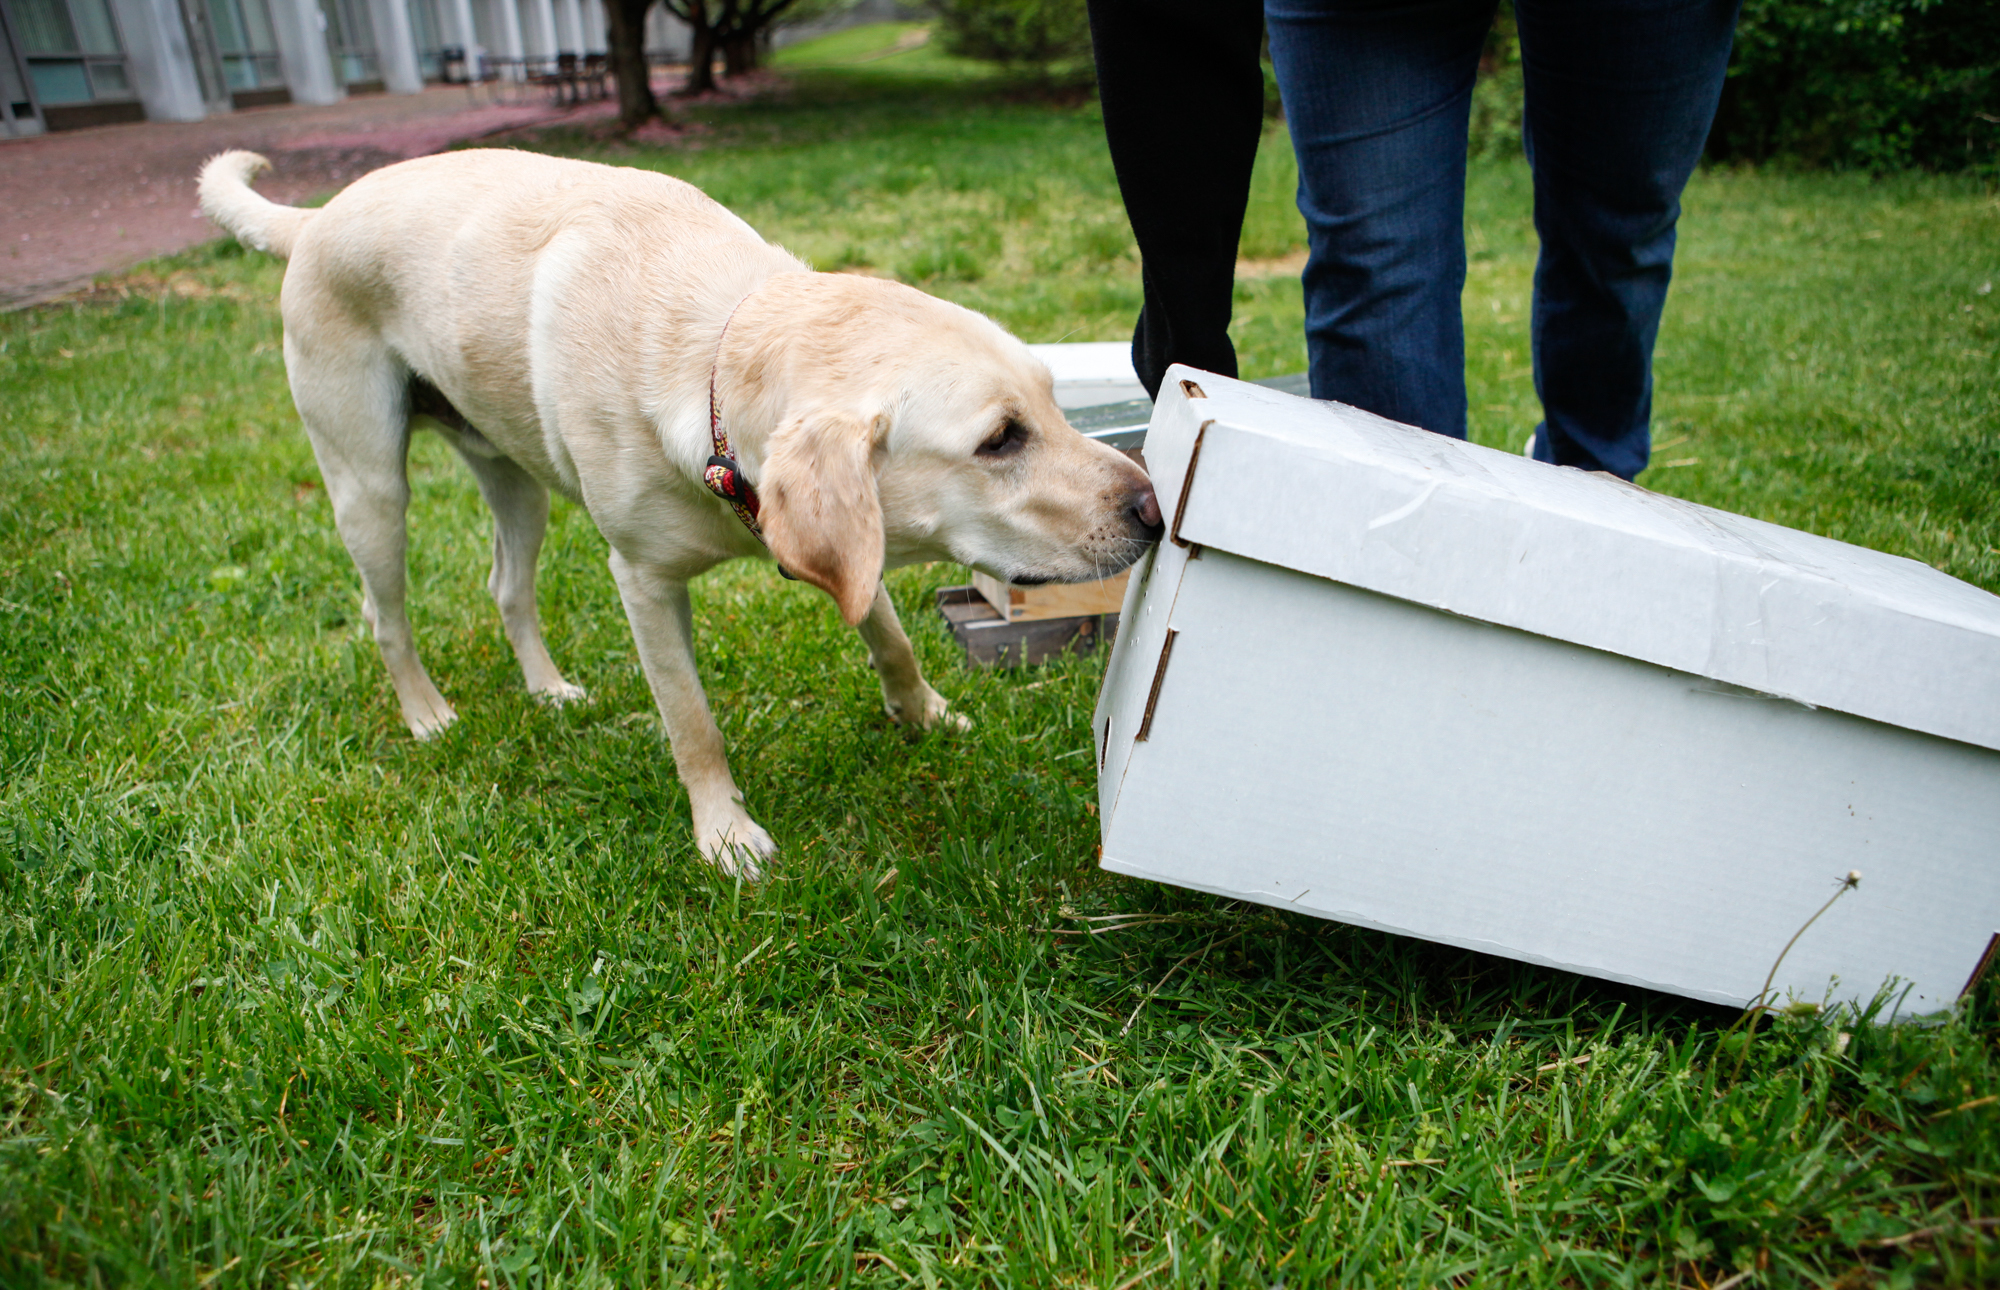 Keeping Bees Safe: It's a Ruff Job, But This Doggy Detective Gets it Done | WGBH | Craving Boston